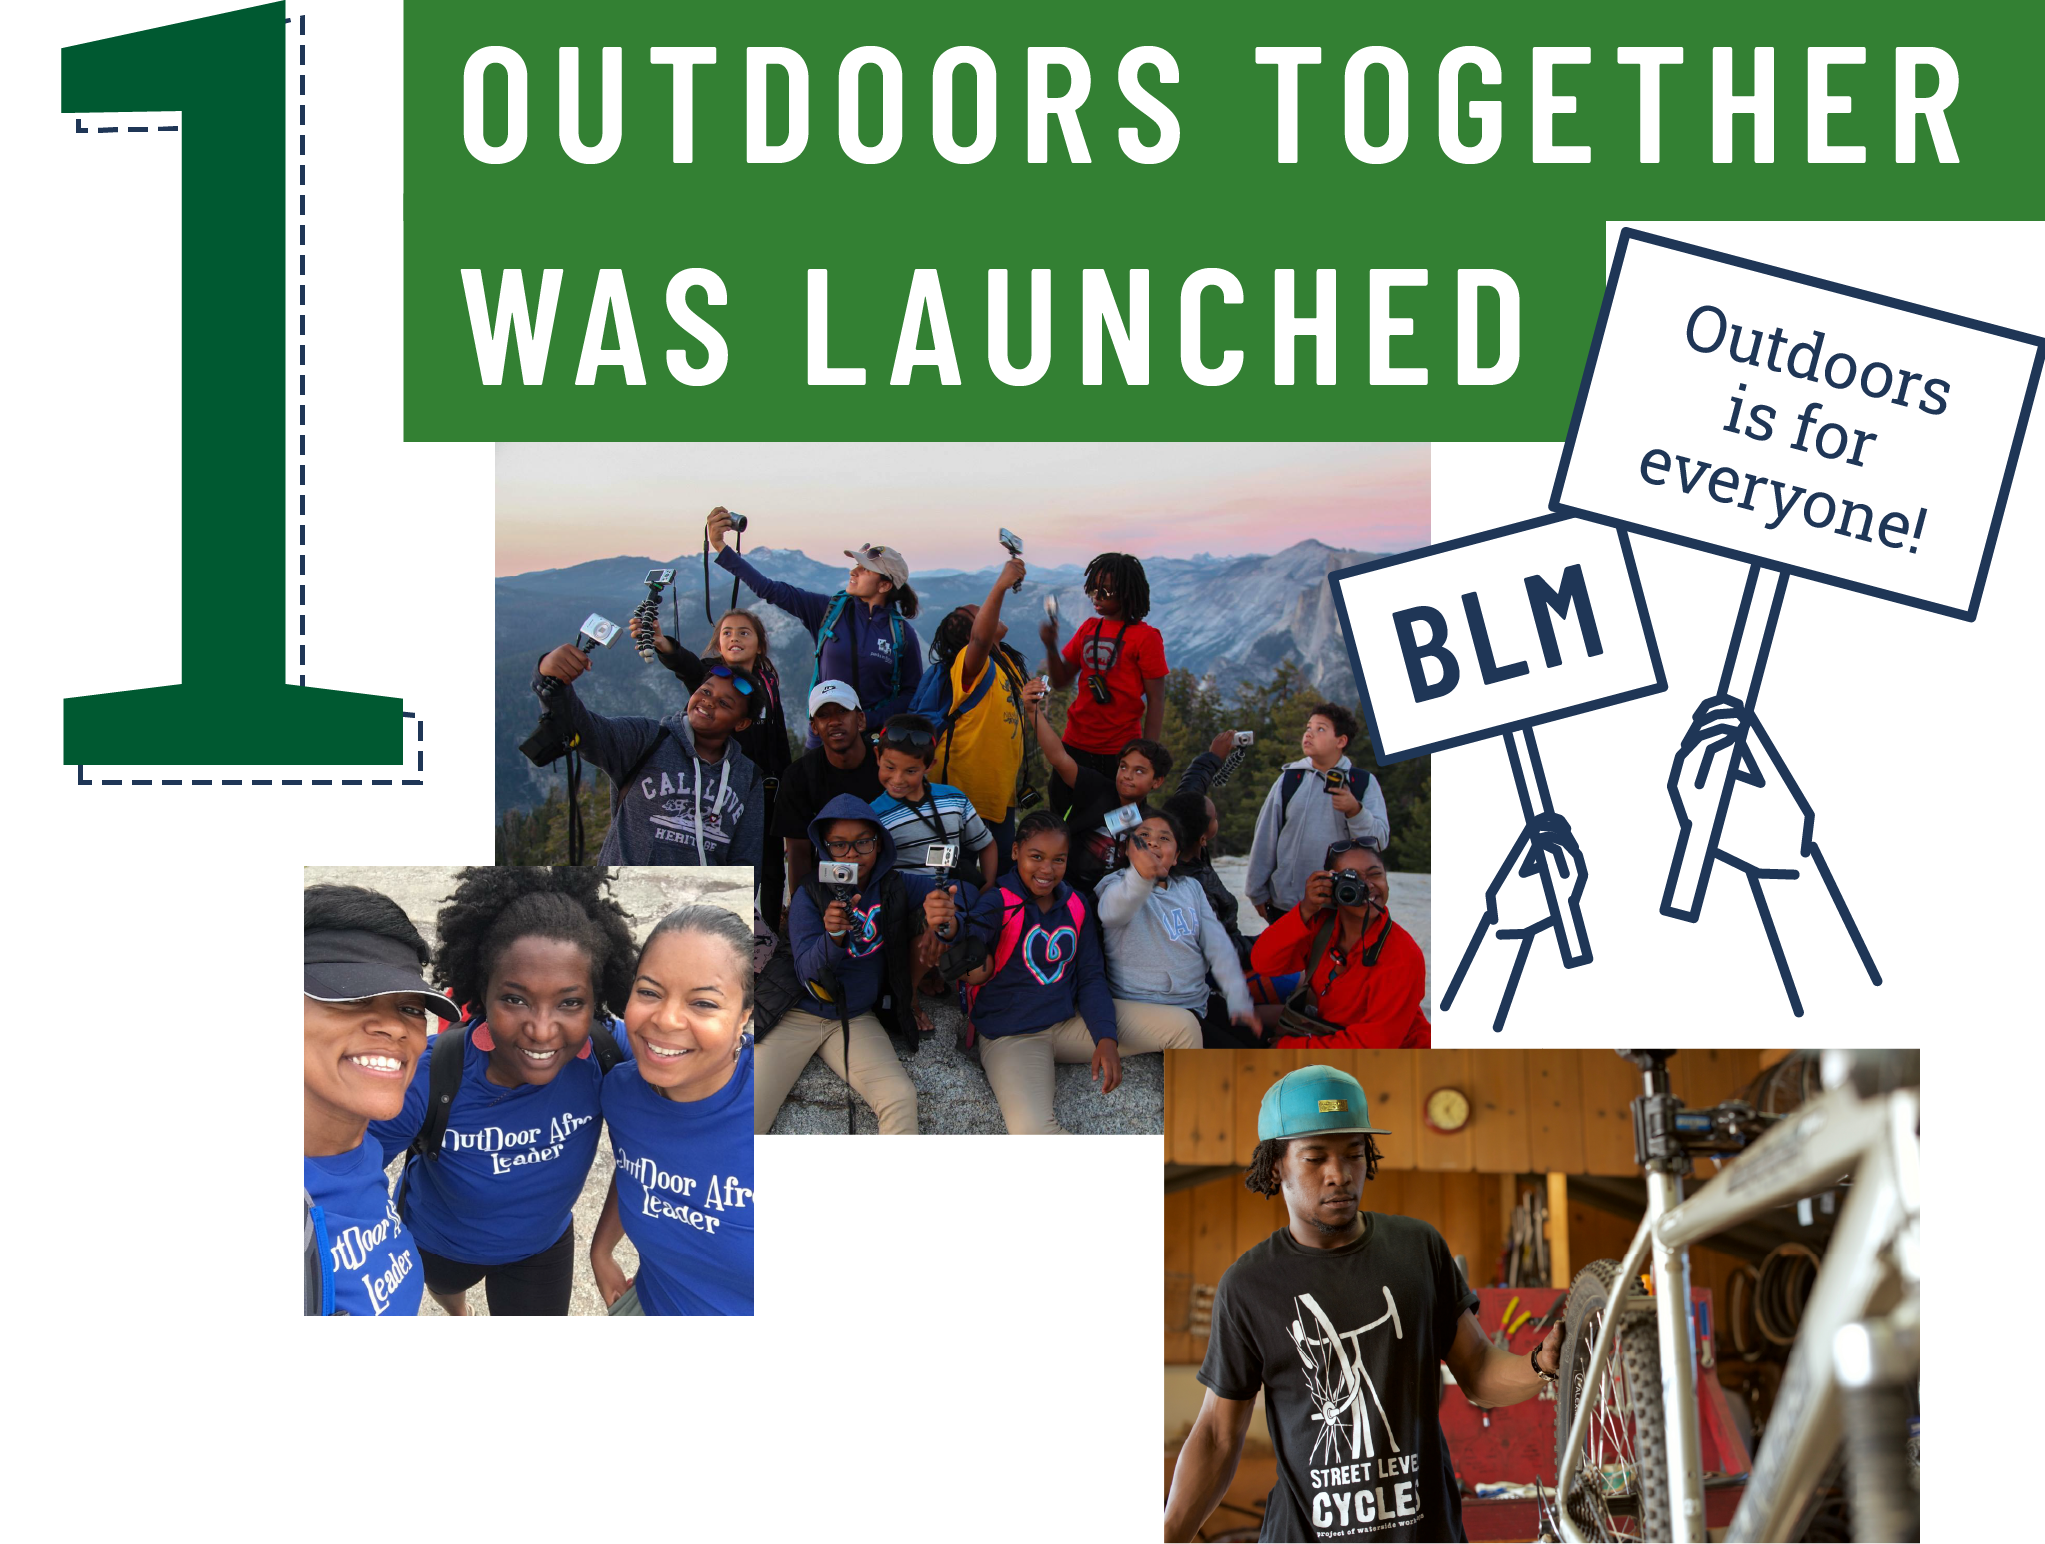 1: Outdoors Together was launched.